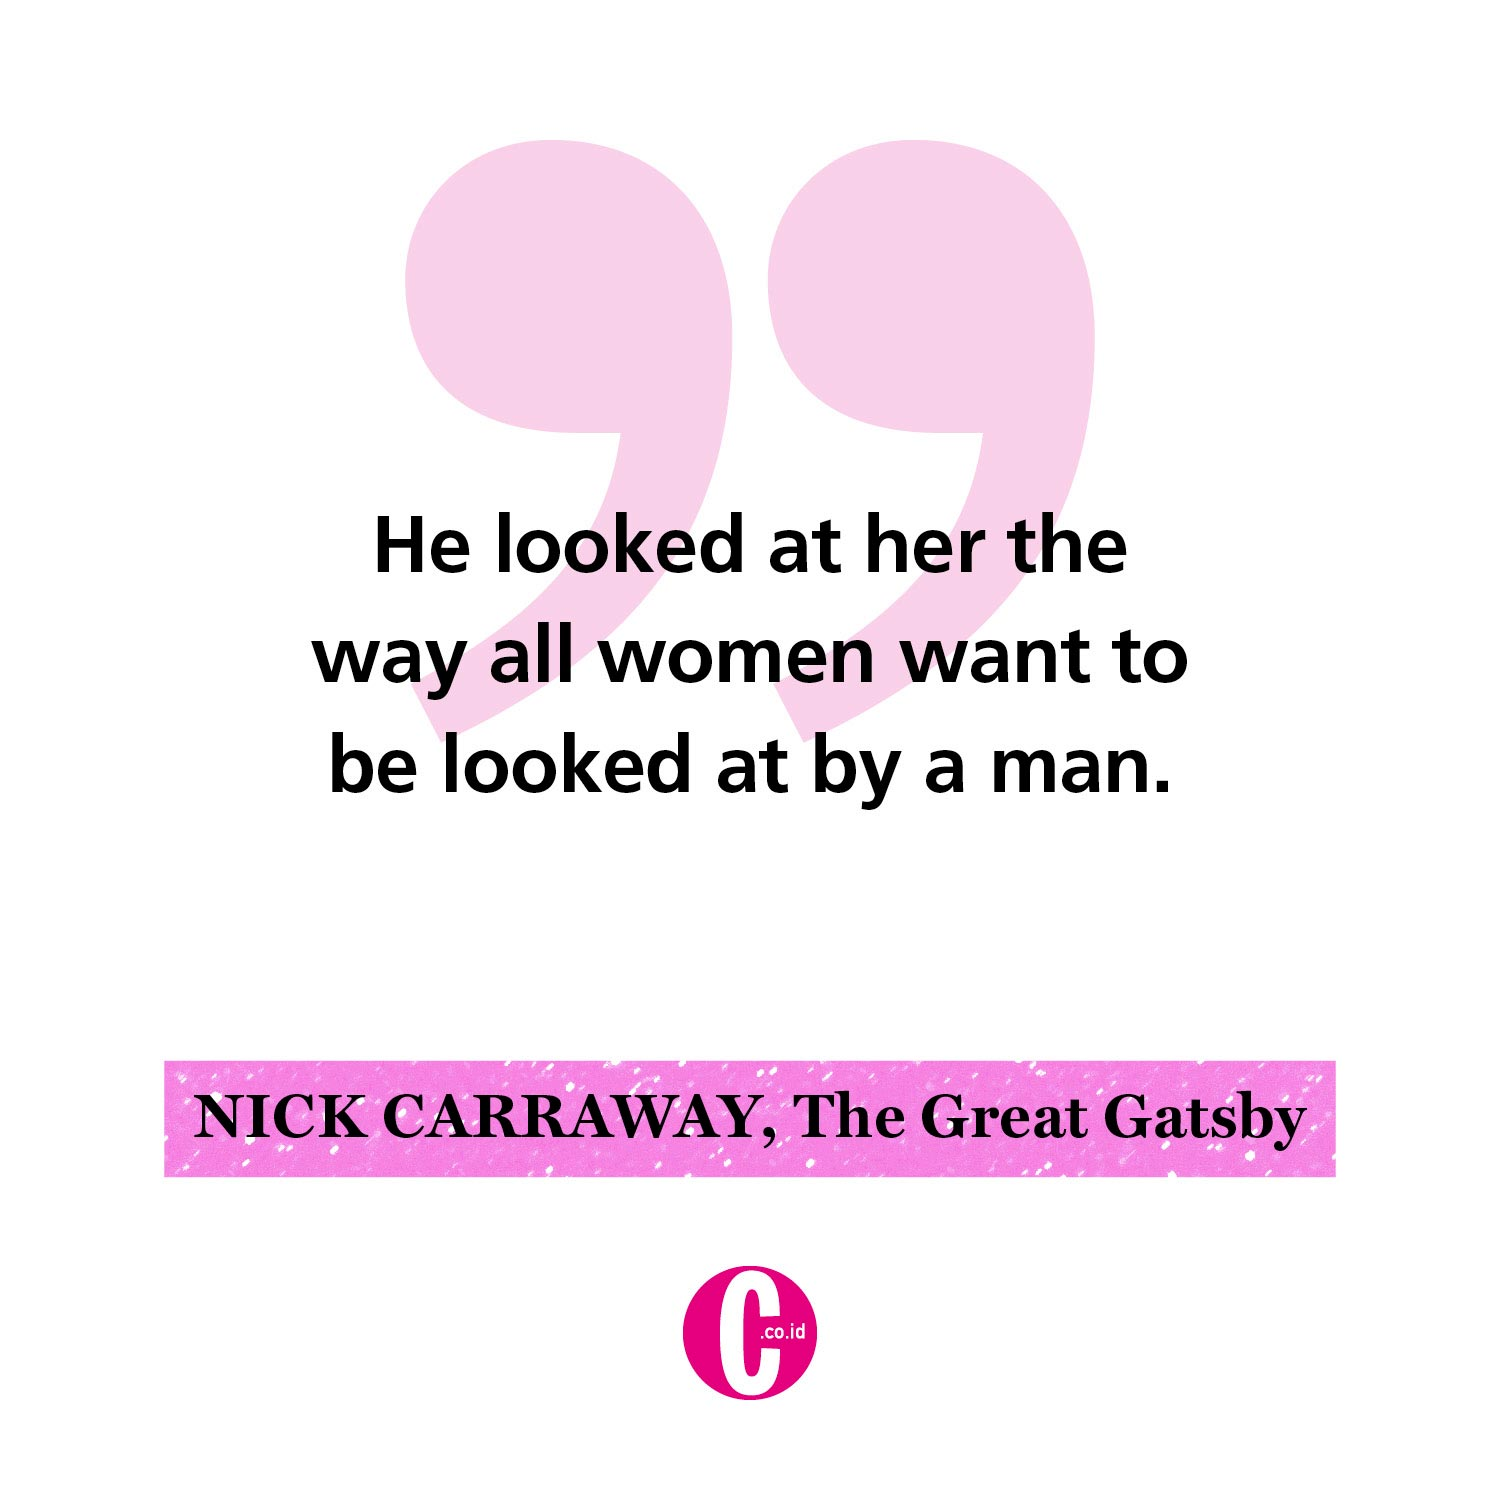 Kata-kata romantis dari Nick Carraway, The Great Gatsby